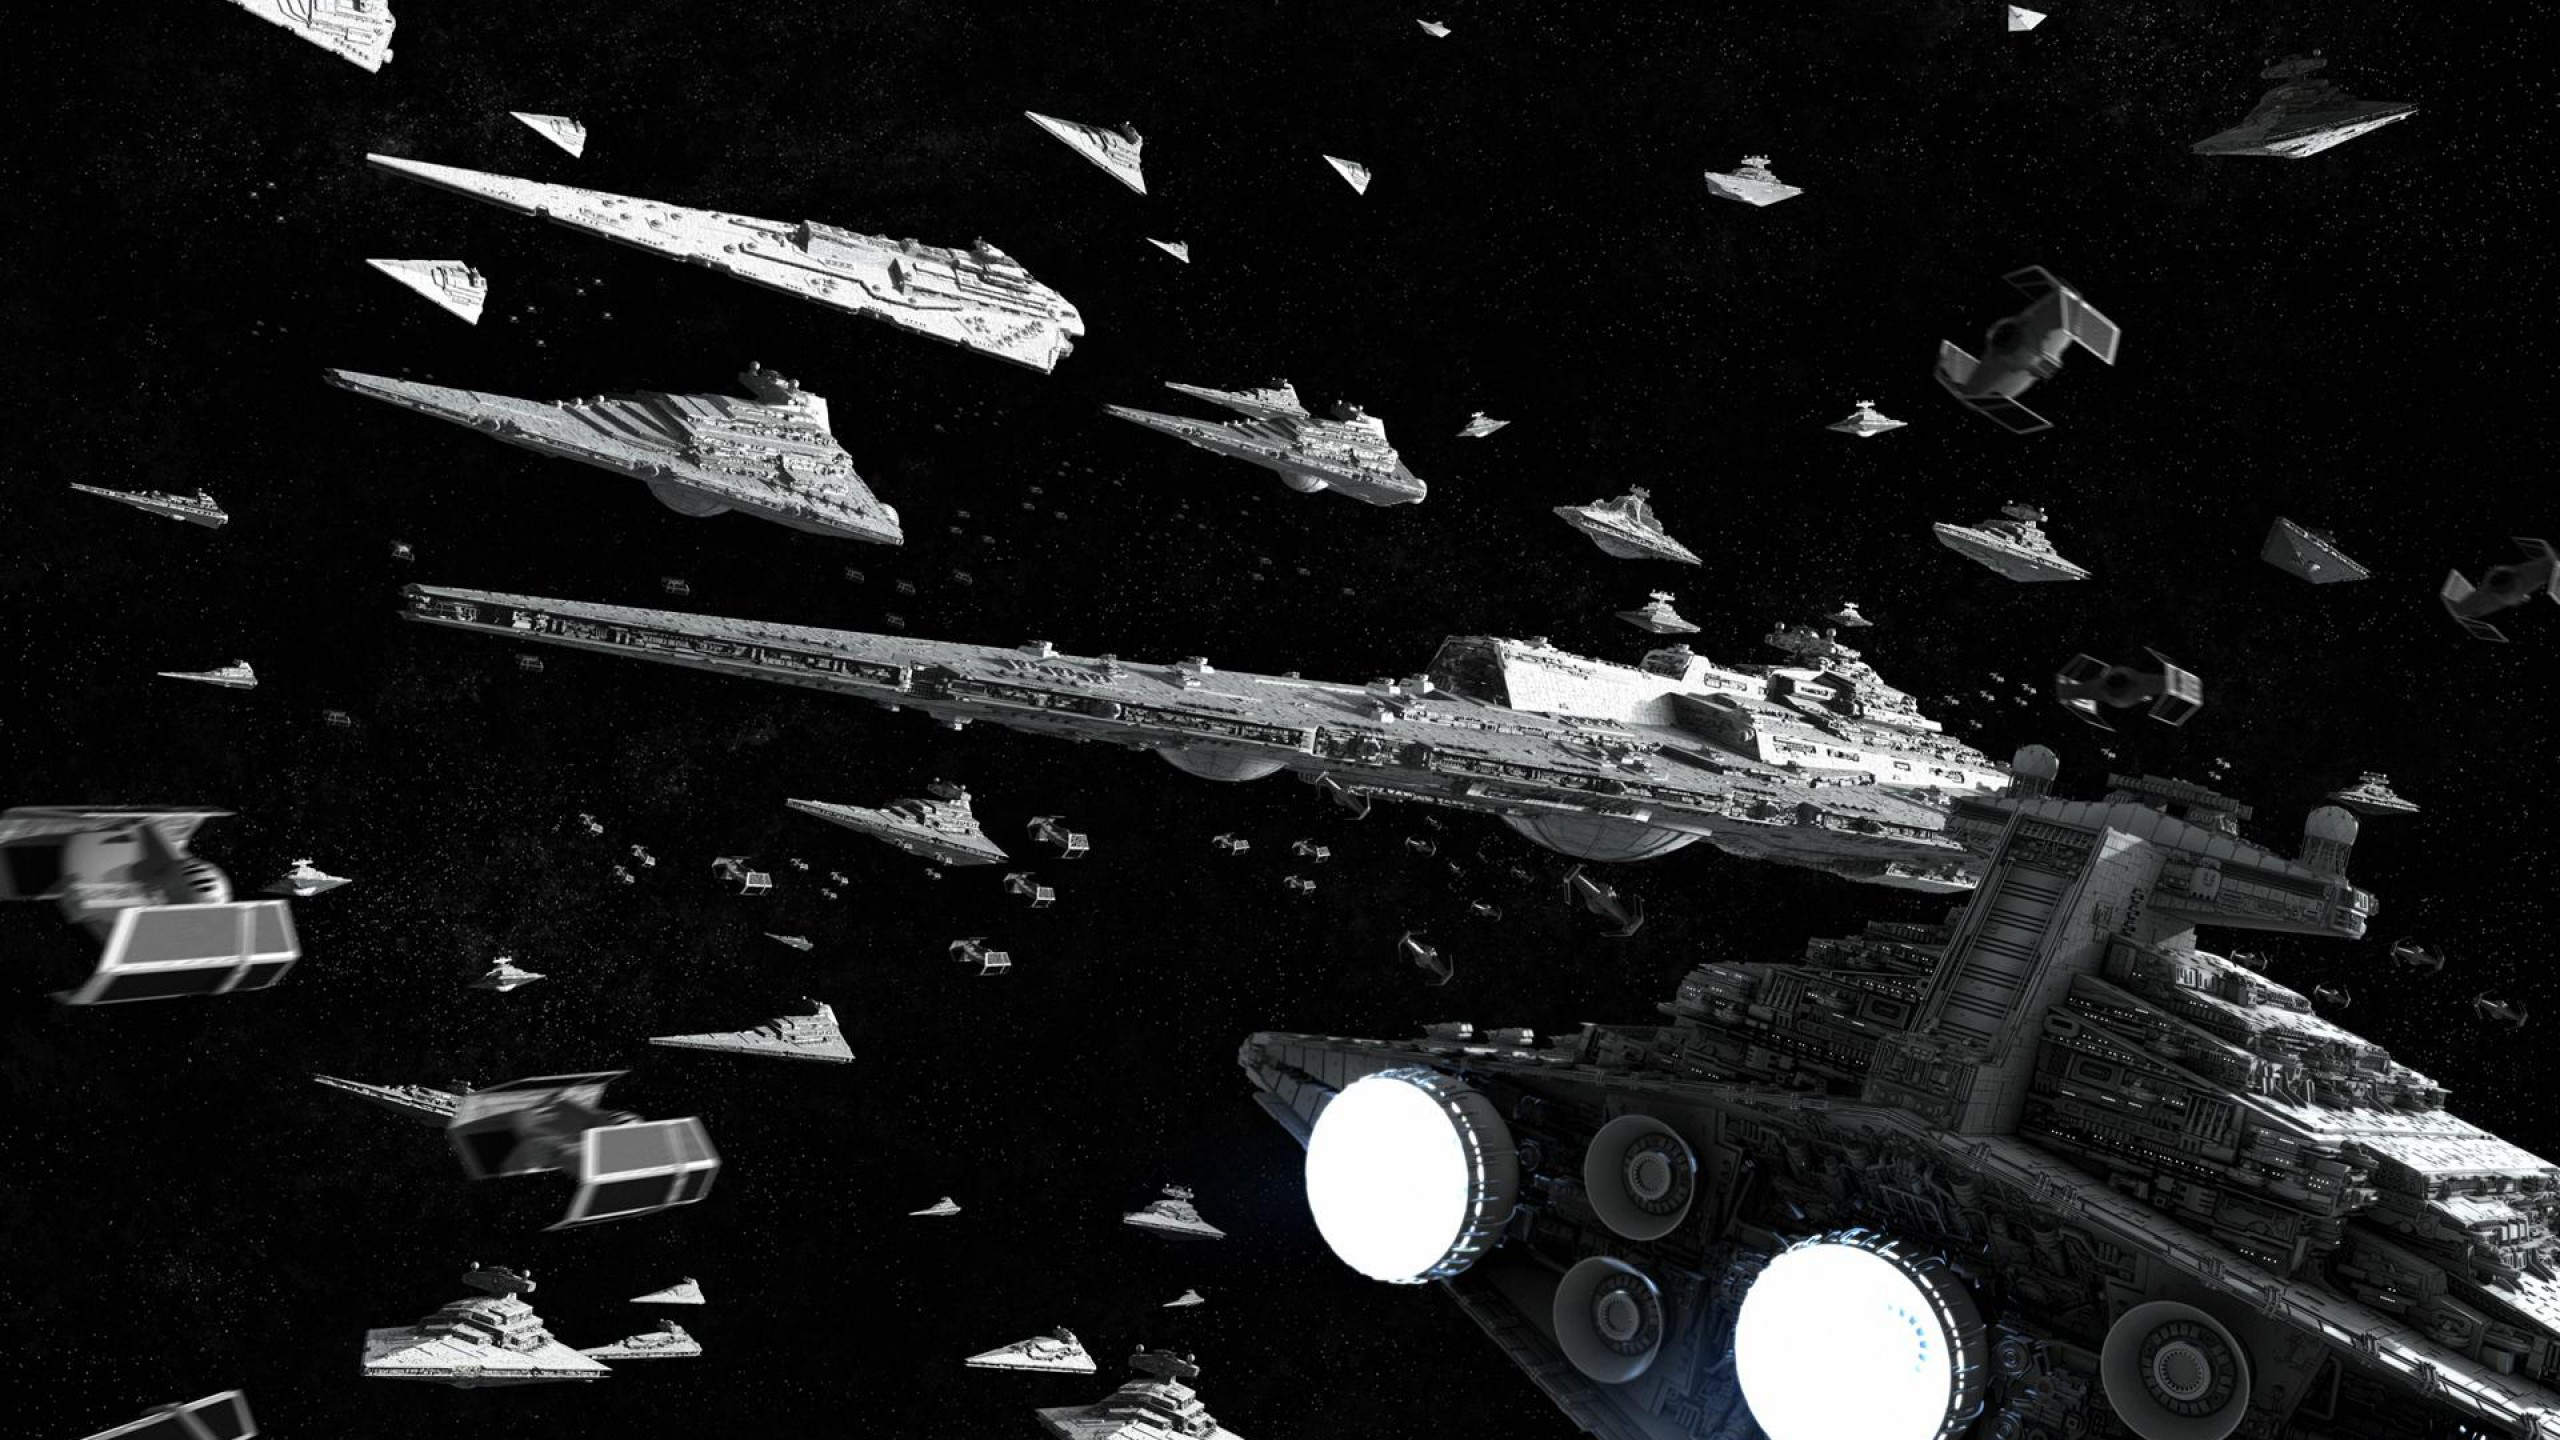 Star Wars Star Destroyer Wallpaper 2 Star Wars Spaceship Fleet 2560x1440 Wallpaper Teahub Io